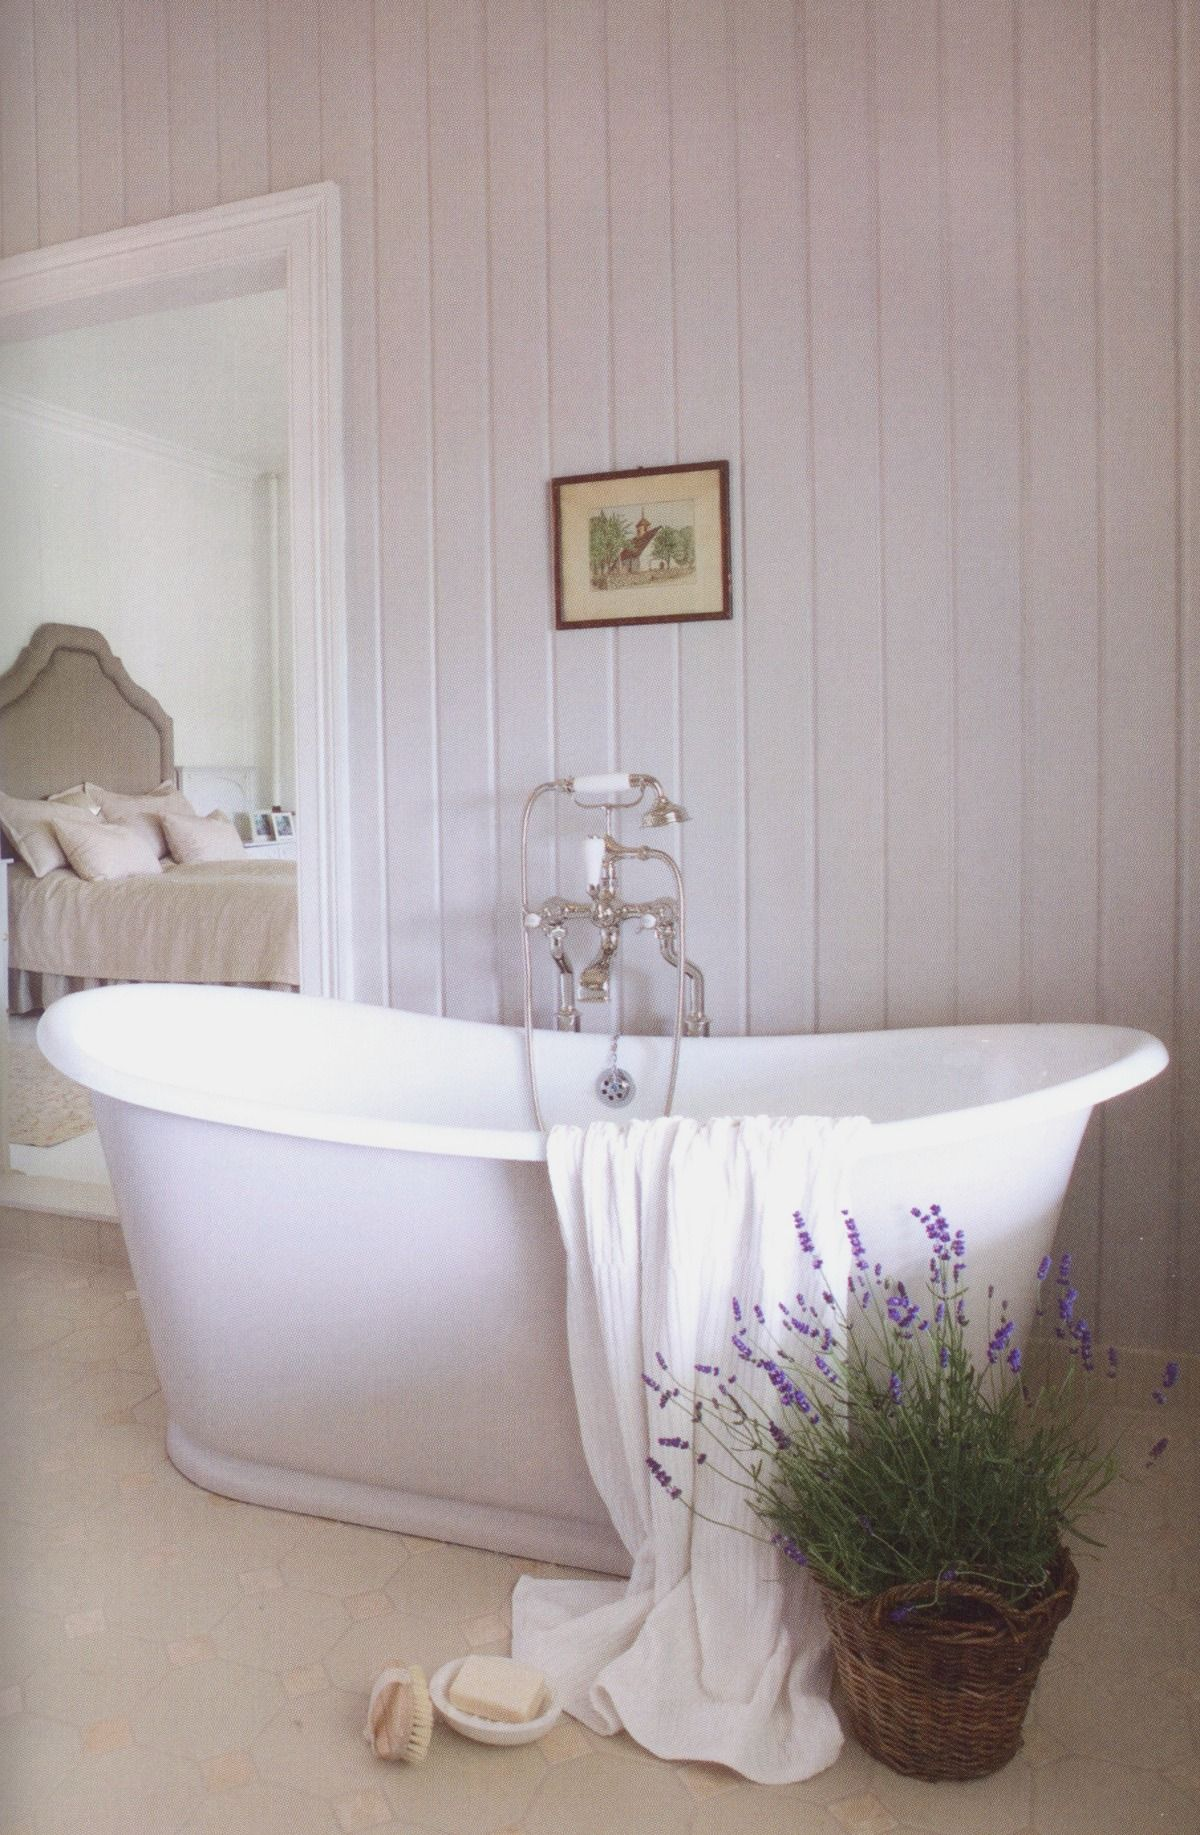 Pin by Dee Pounds on Rue de Jardin | Pinterest | Lavender, Bath and Tubs